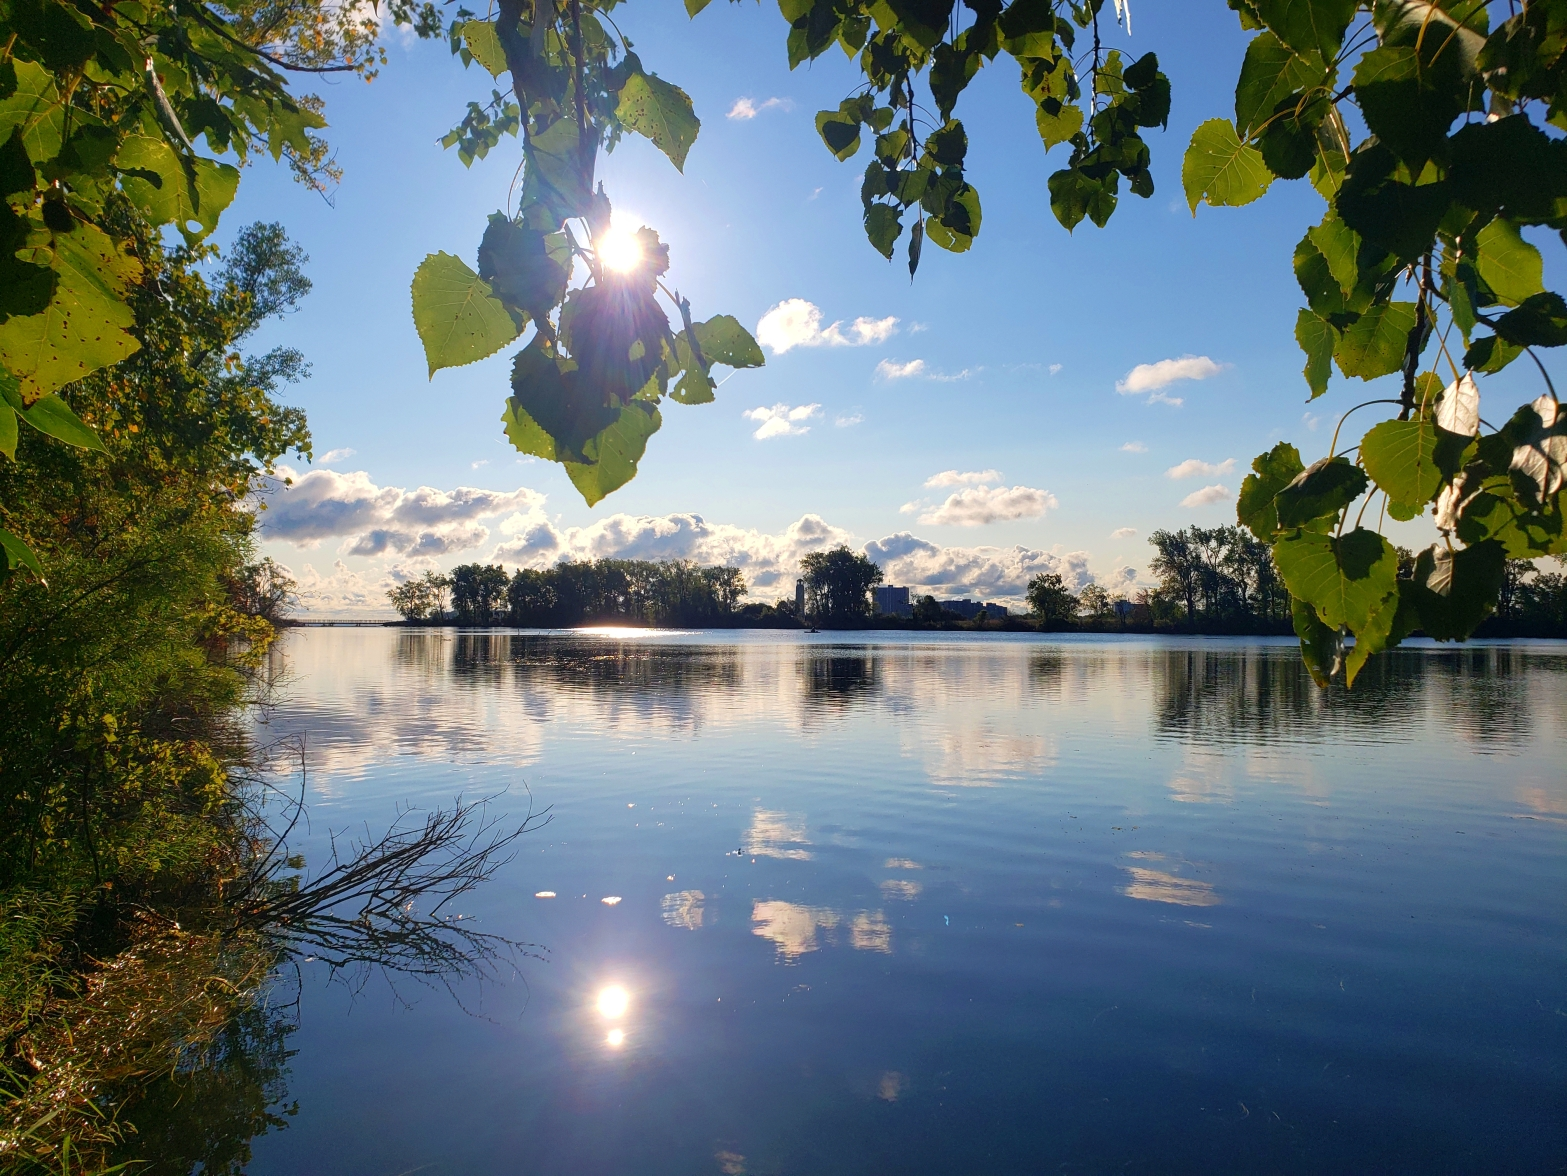 The Blue Heron Lagoon on Belle Isle State Park in Detroit Michigan